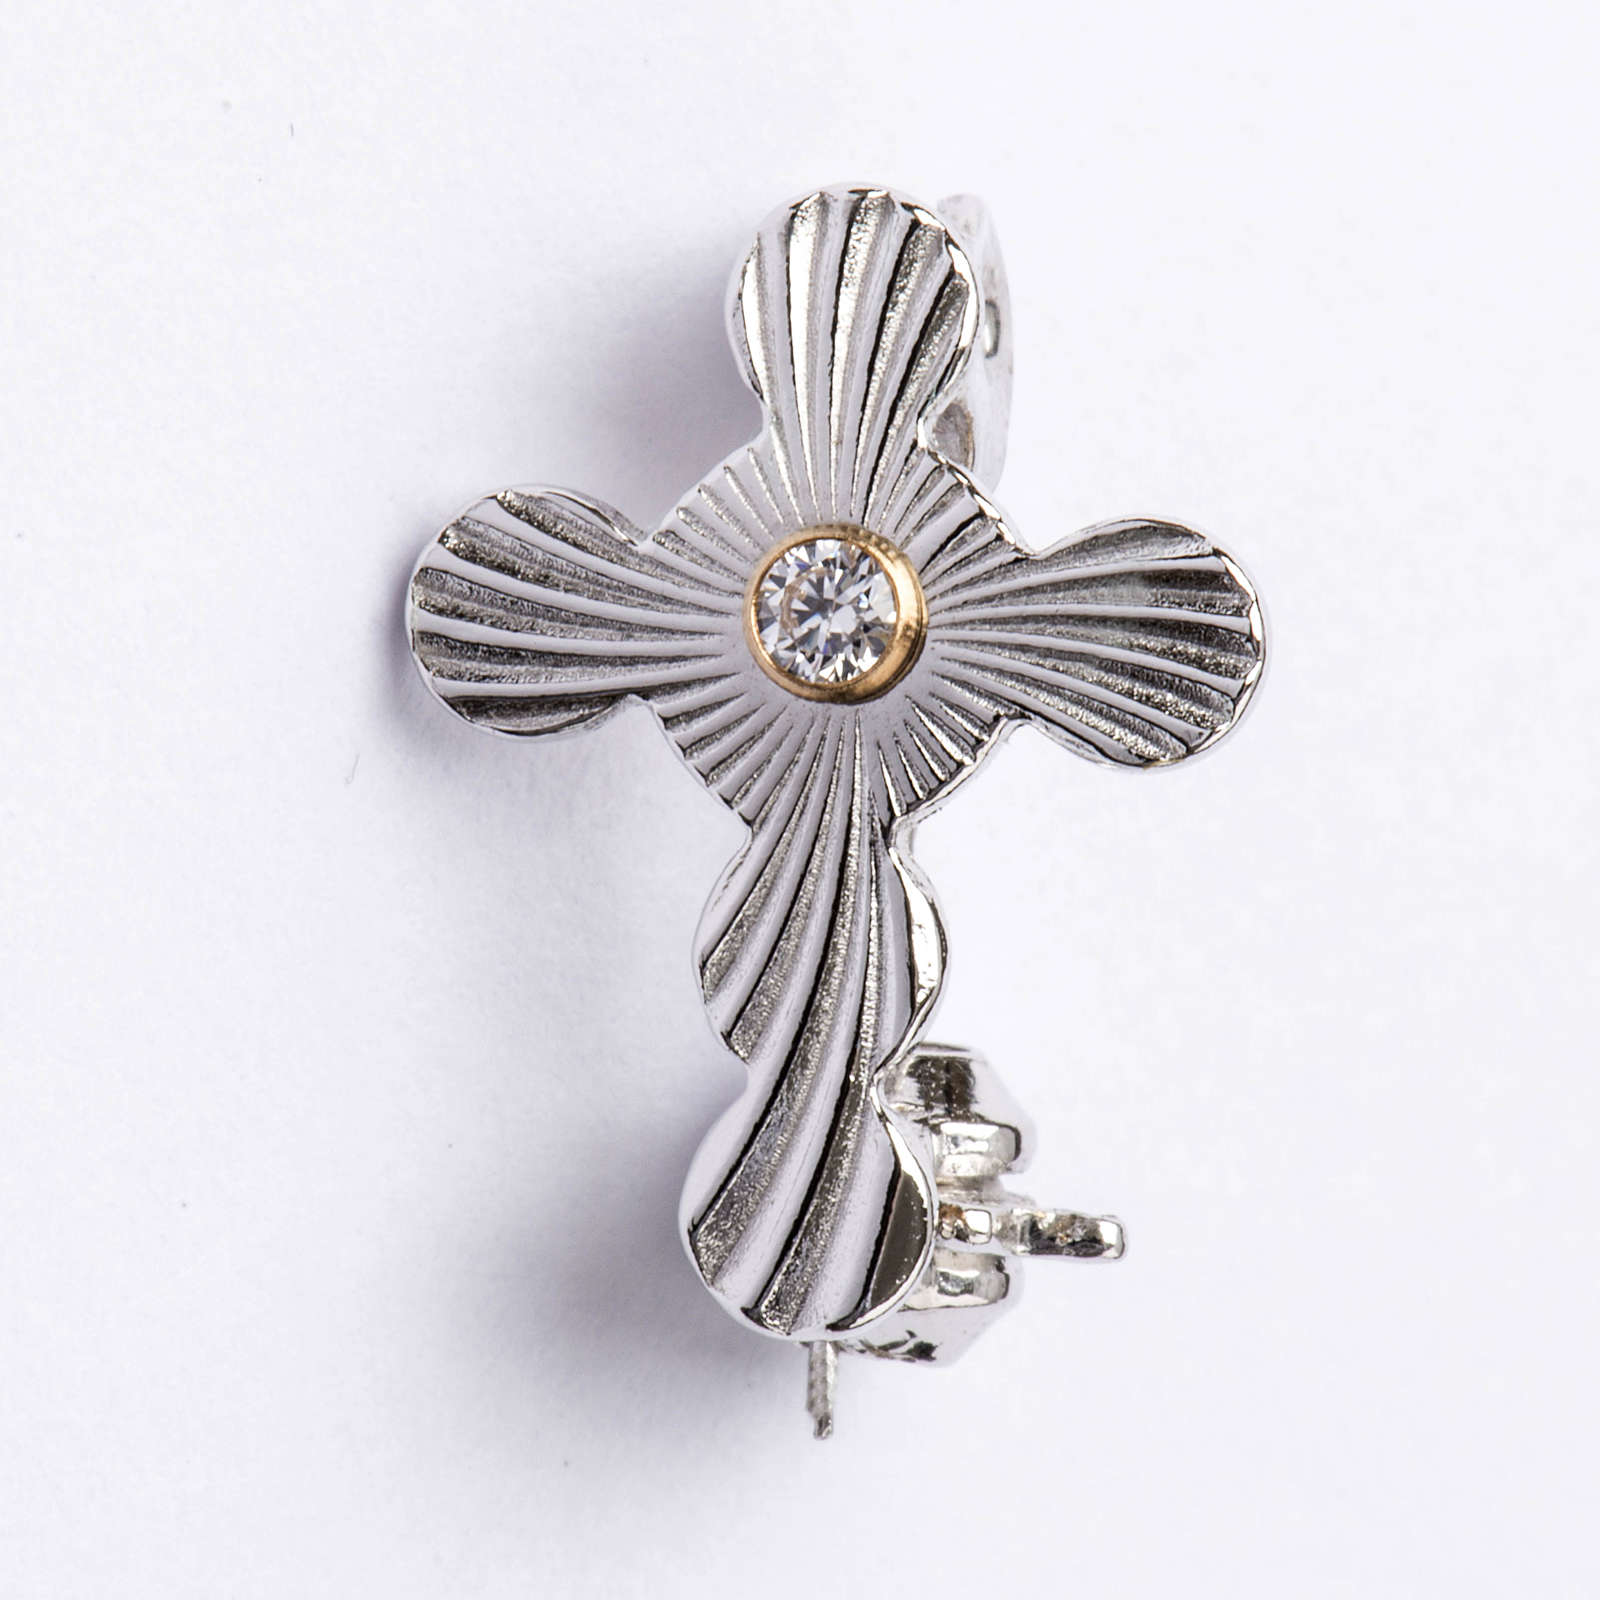 Clergy rounded cross pin in 925 silver 4